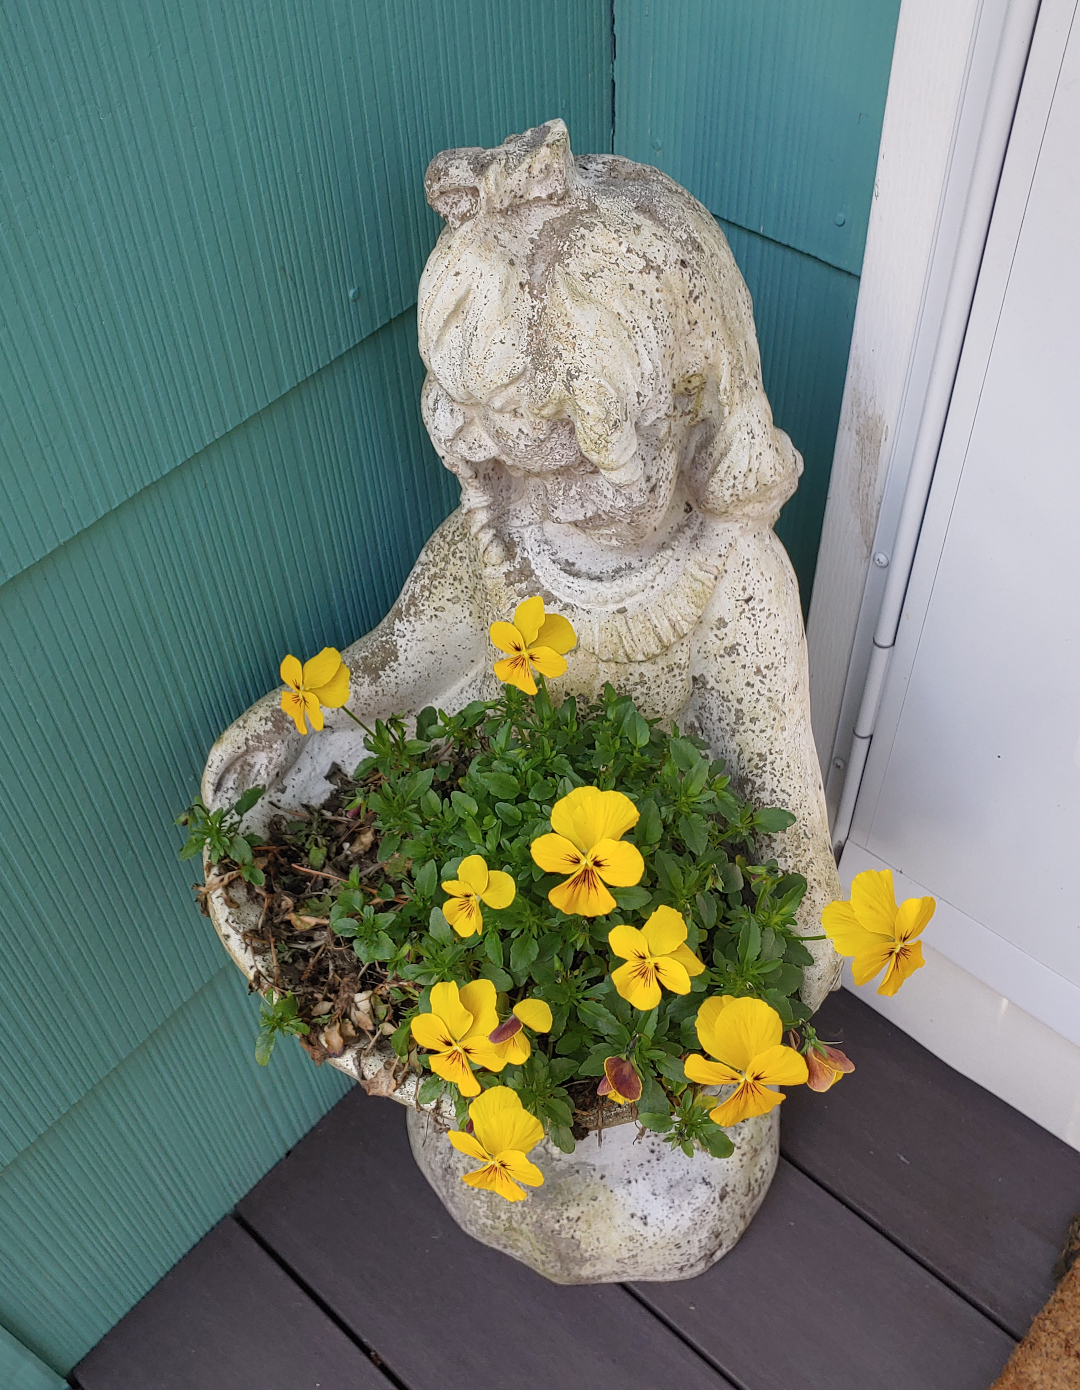 Planter in the shape of a girl holding a basket with yellow flowers growing in it